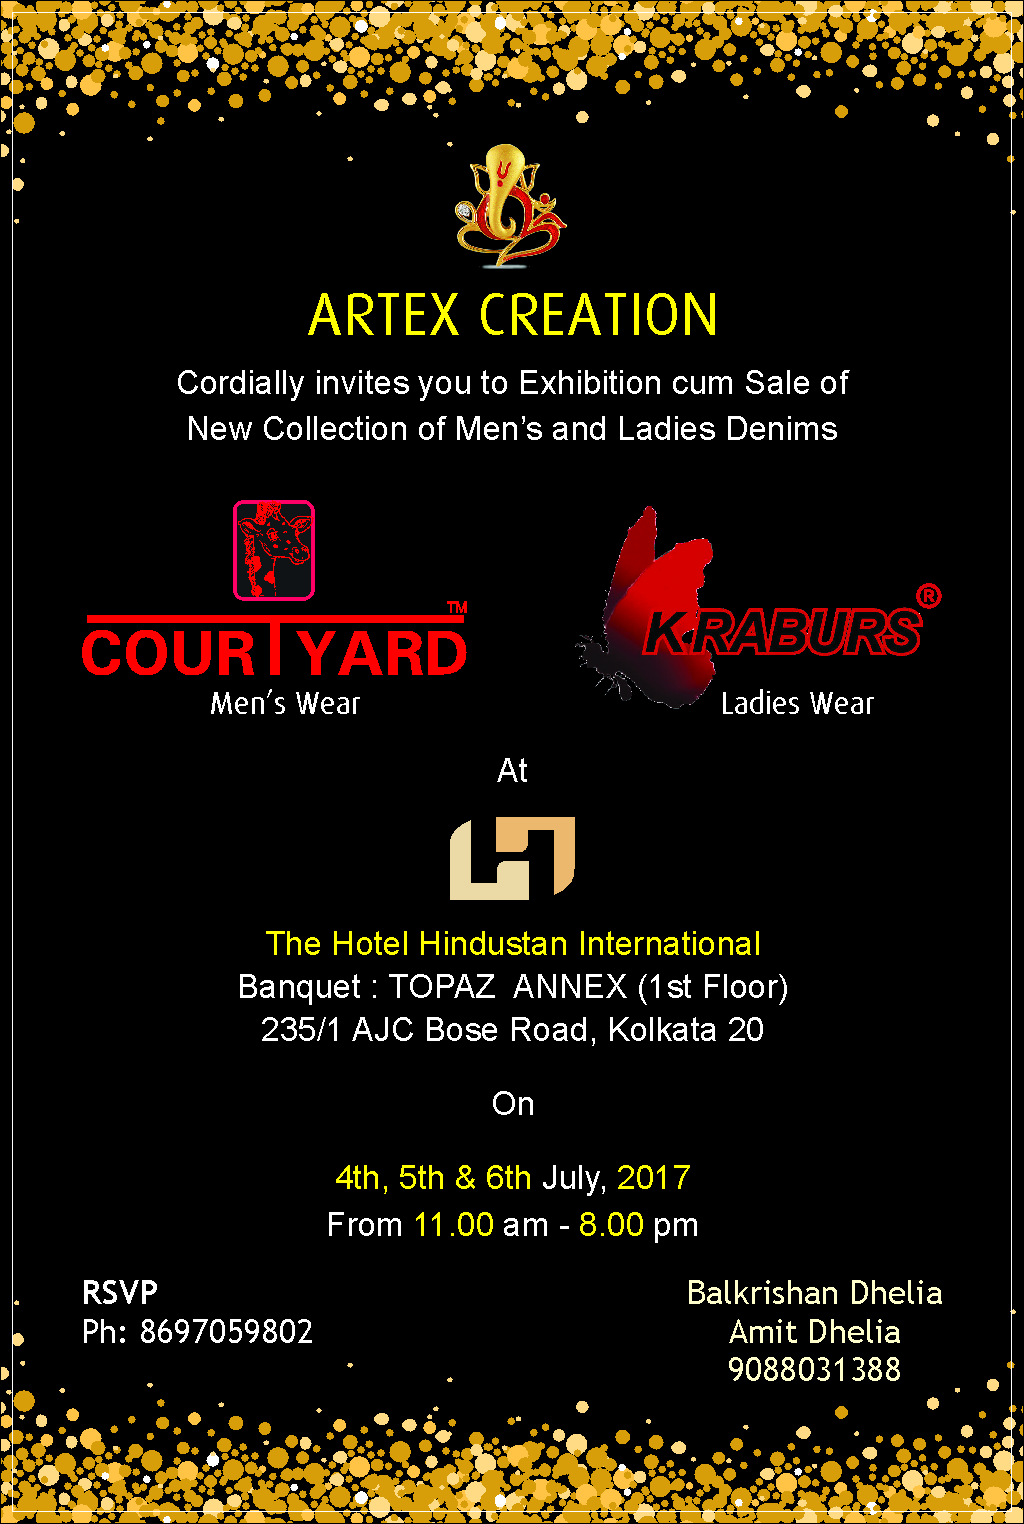 ARTEX CREATION PRESENT EXHIBITION CUM SALE  JULY 2017